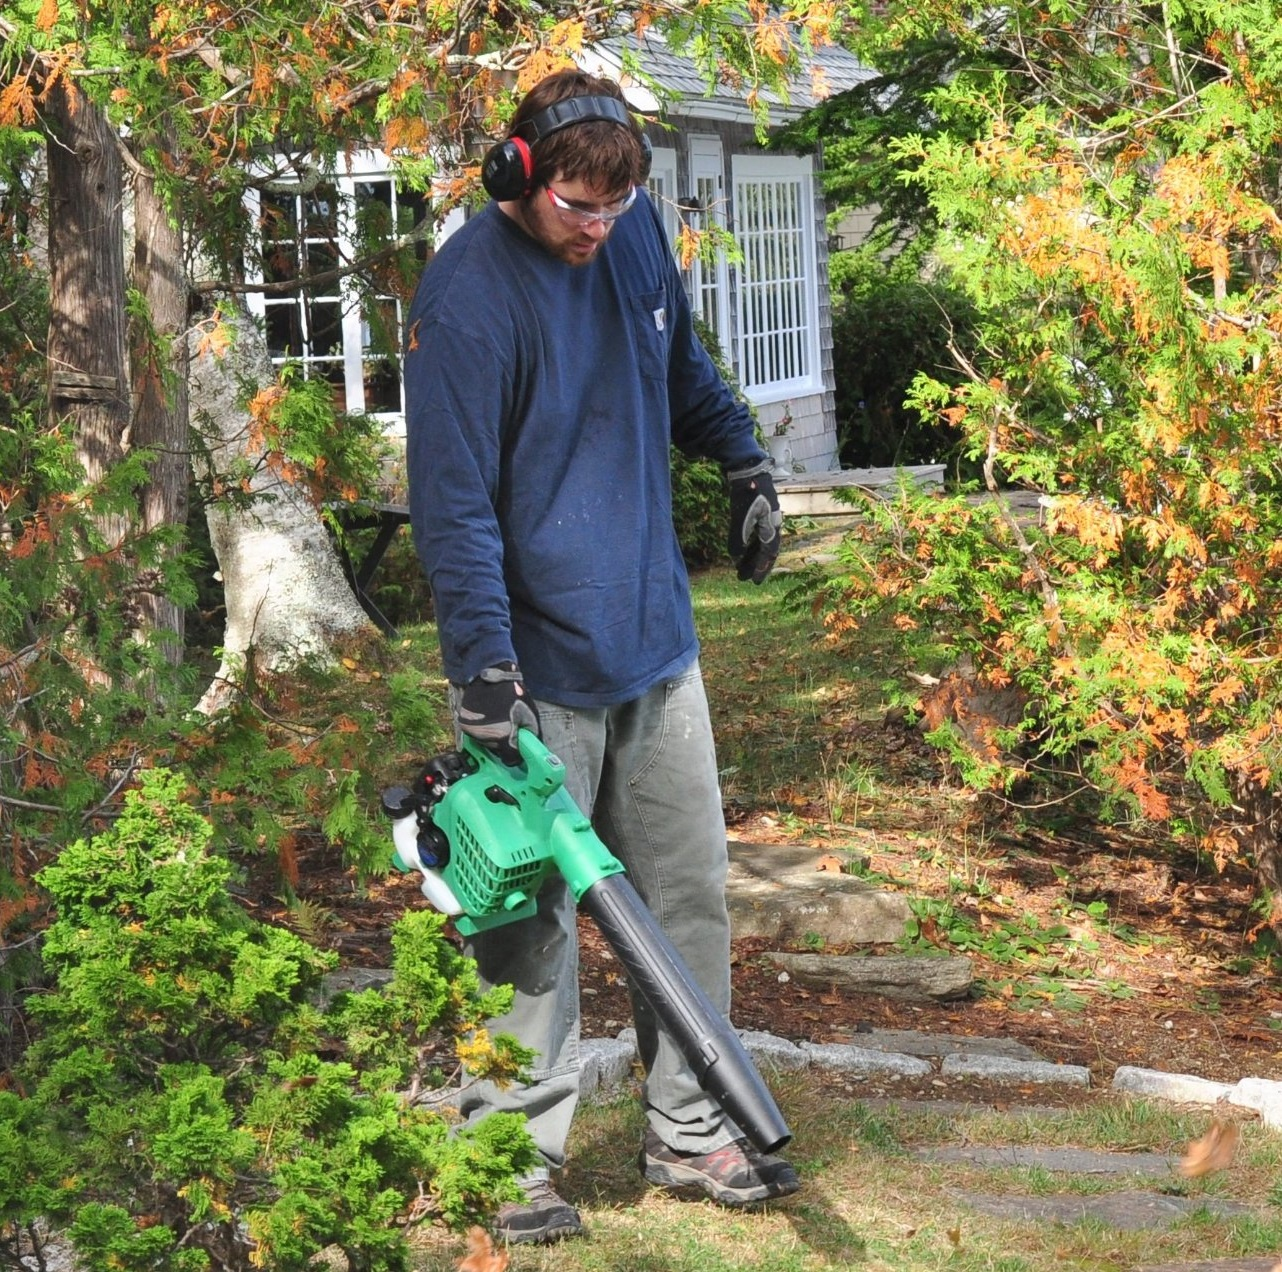 Hitachi RB24EAP 170 MPH Handheld Leaf Blower